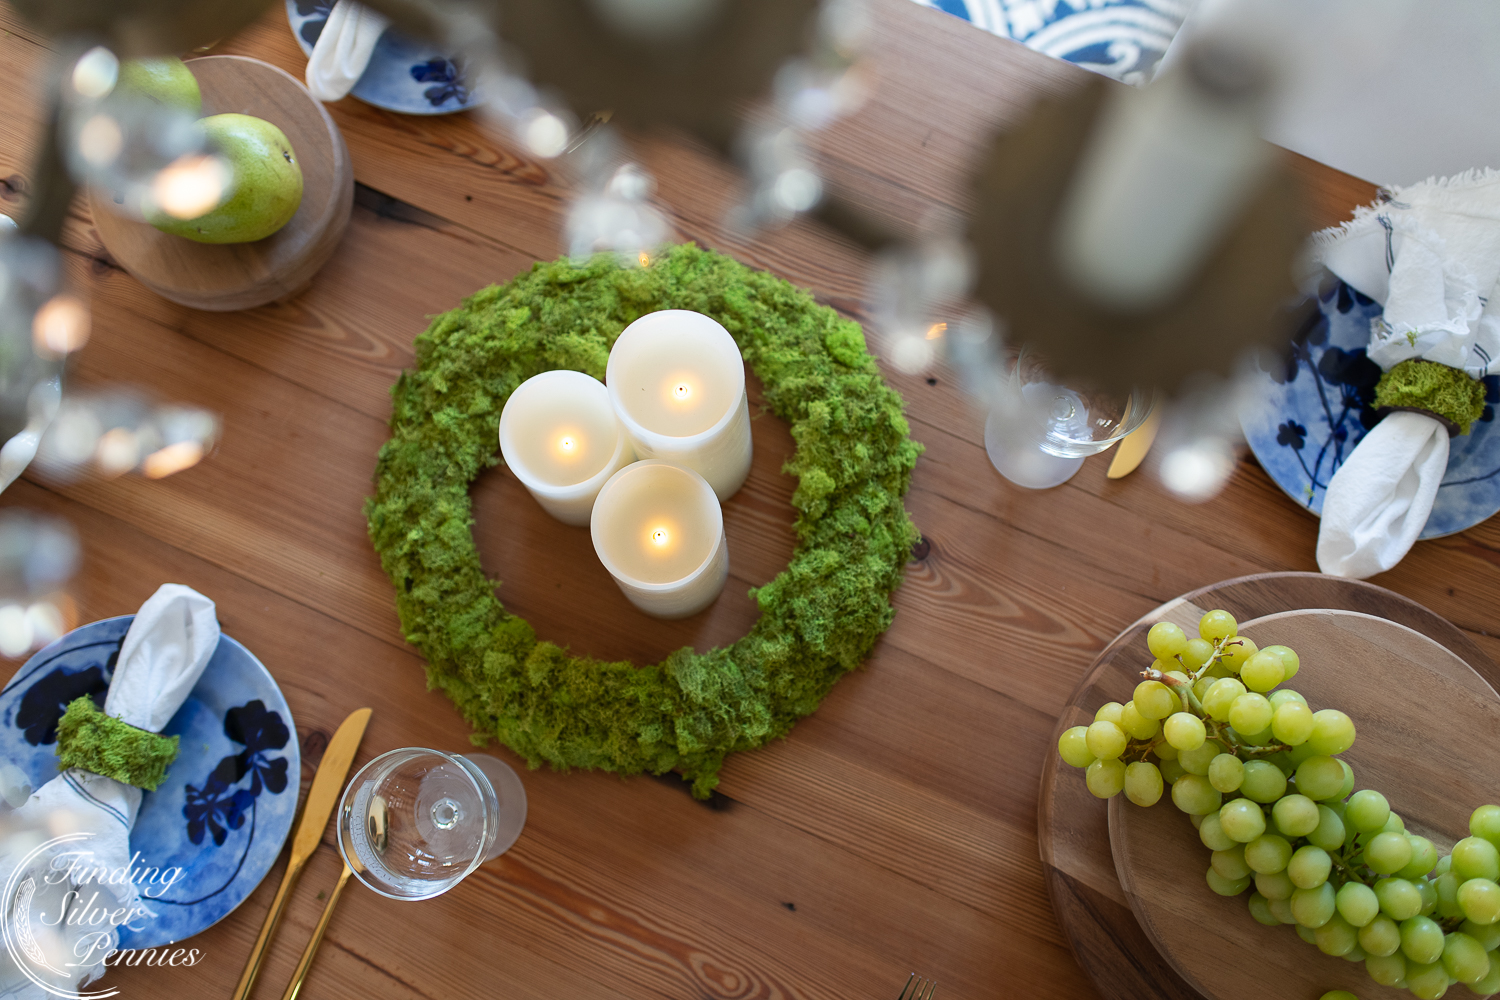 learn to make this pretty moss wreath #moss #crafts #DIYmosswreath #diymossnapkinrings #winterdecorating #hygge #cozyliving